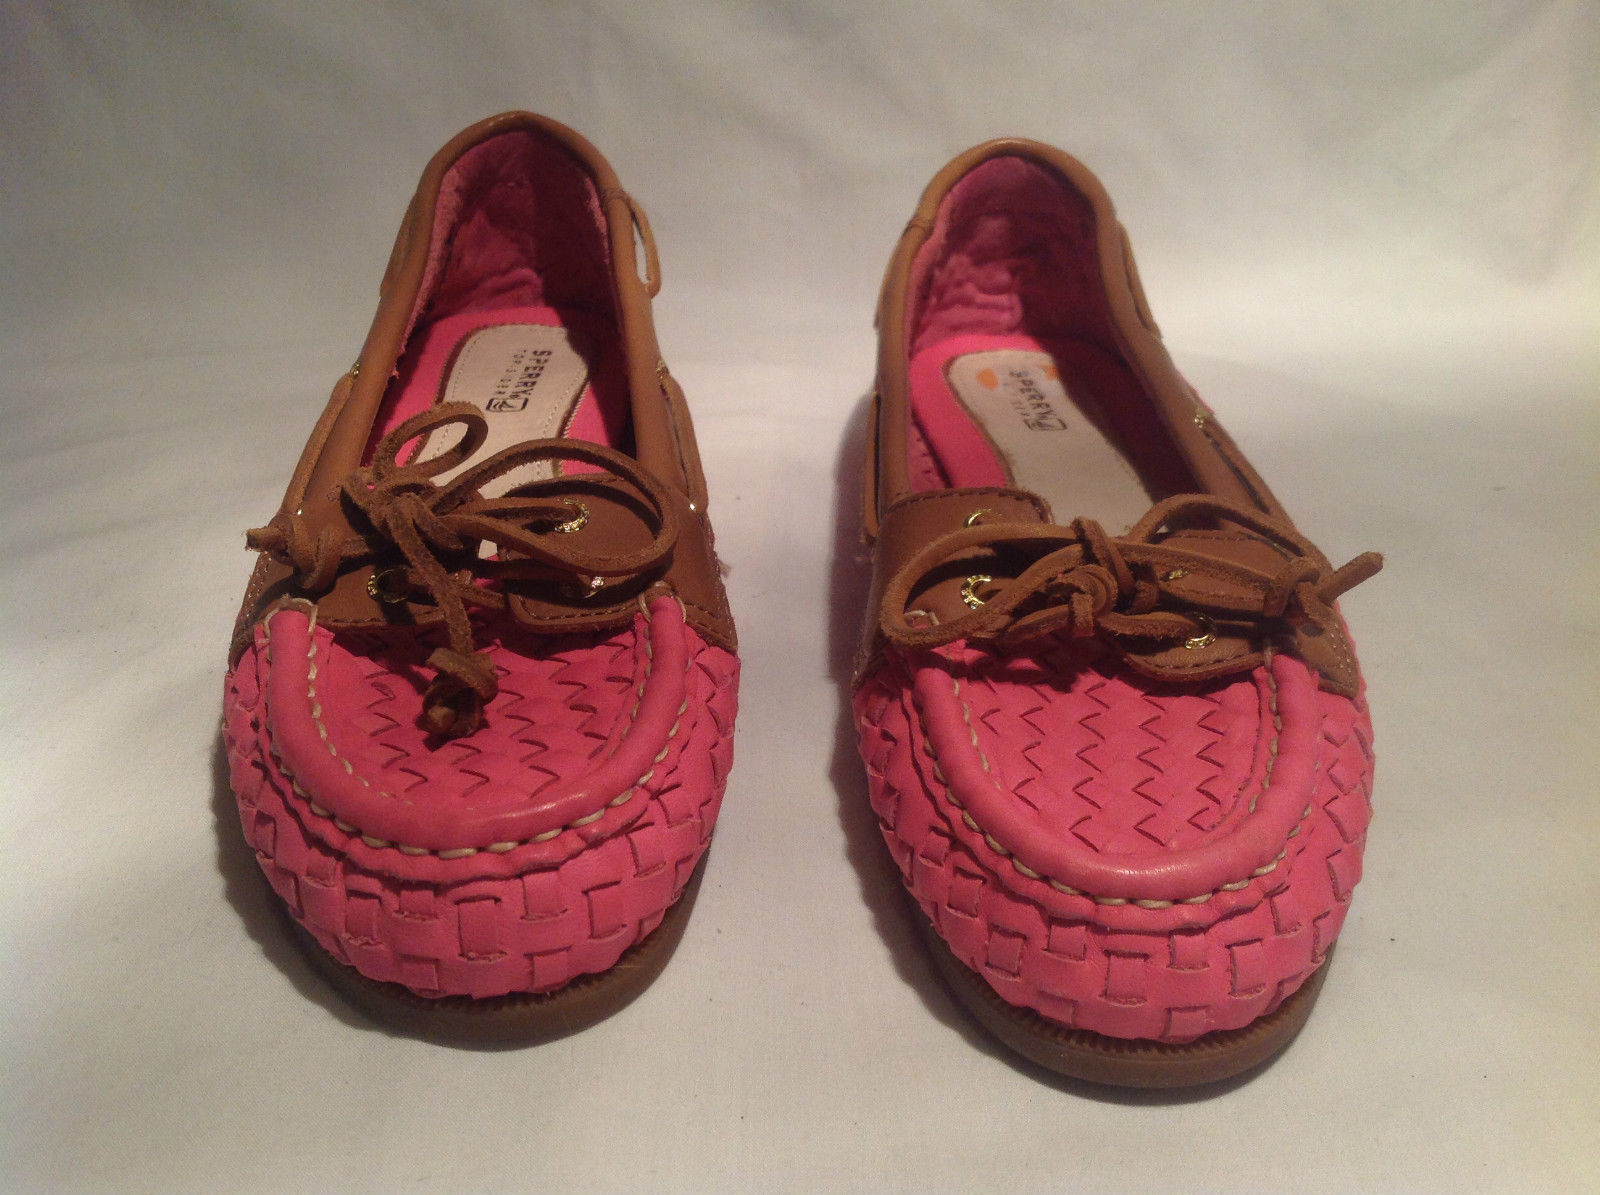 Sperry Top Sider Pink Flats Size 7M Leather Upper Great Condition